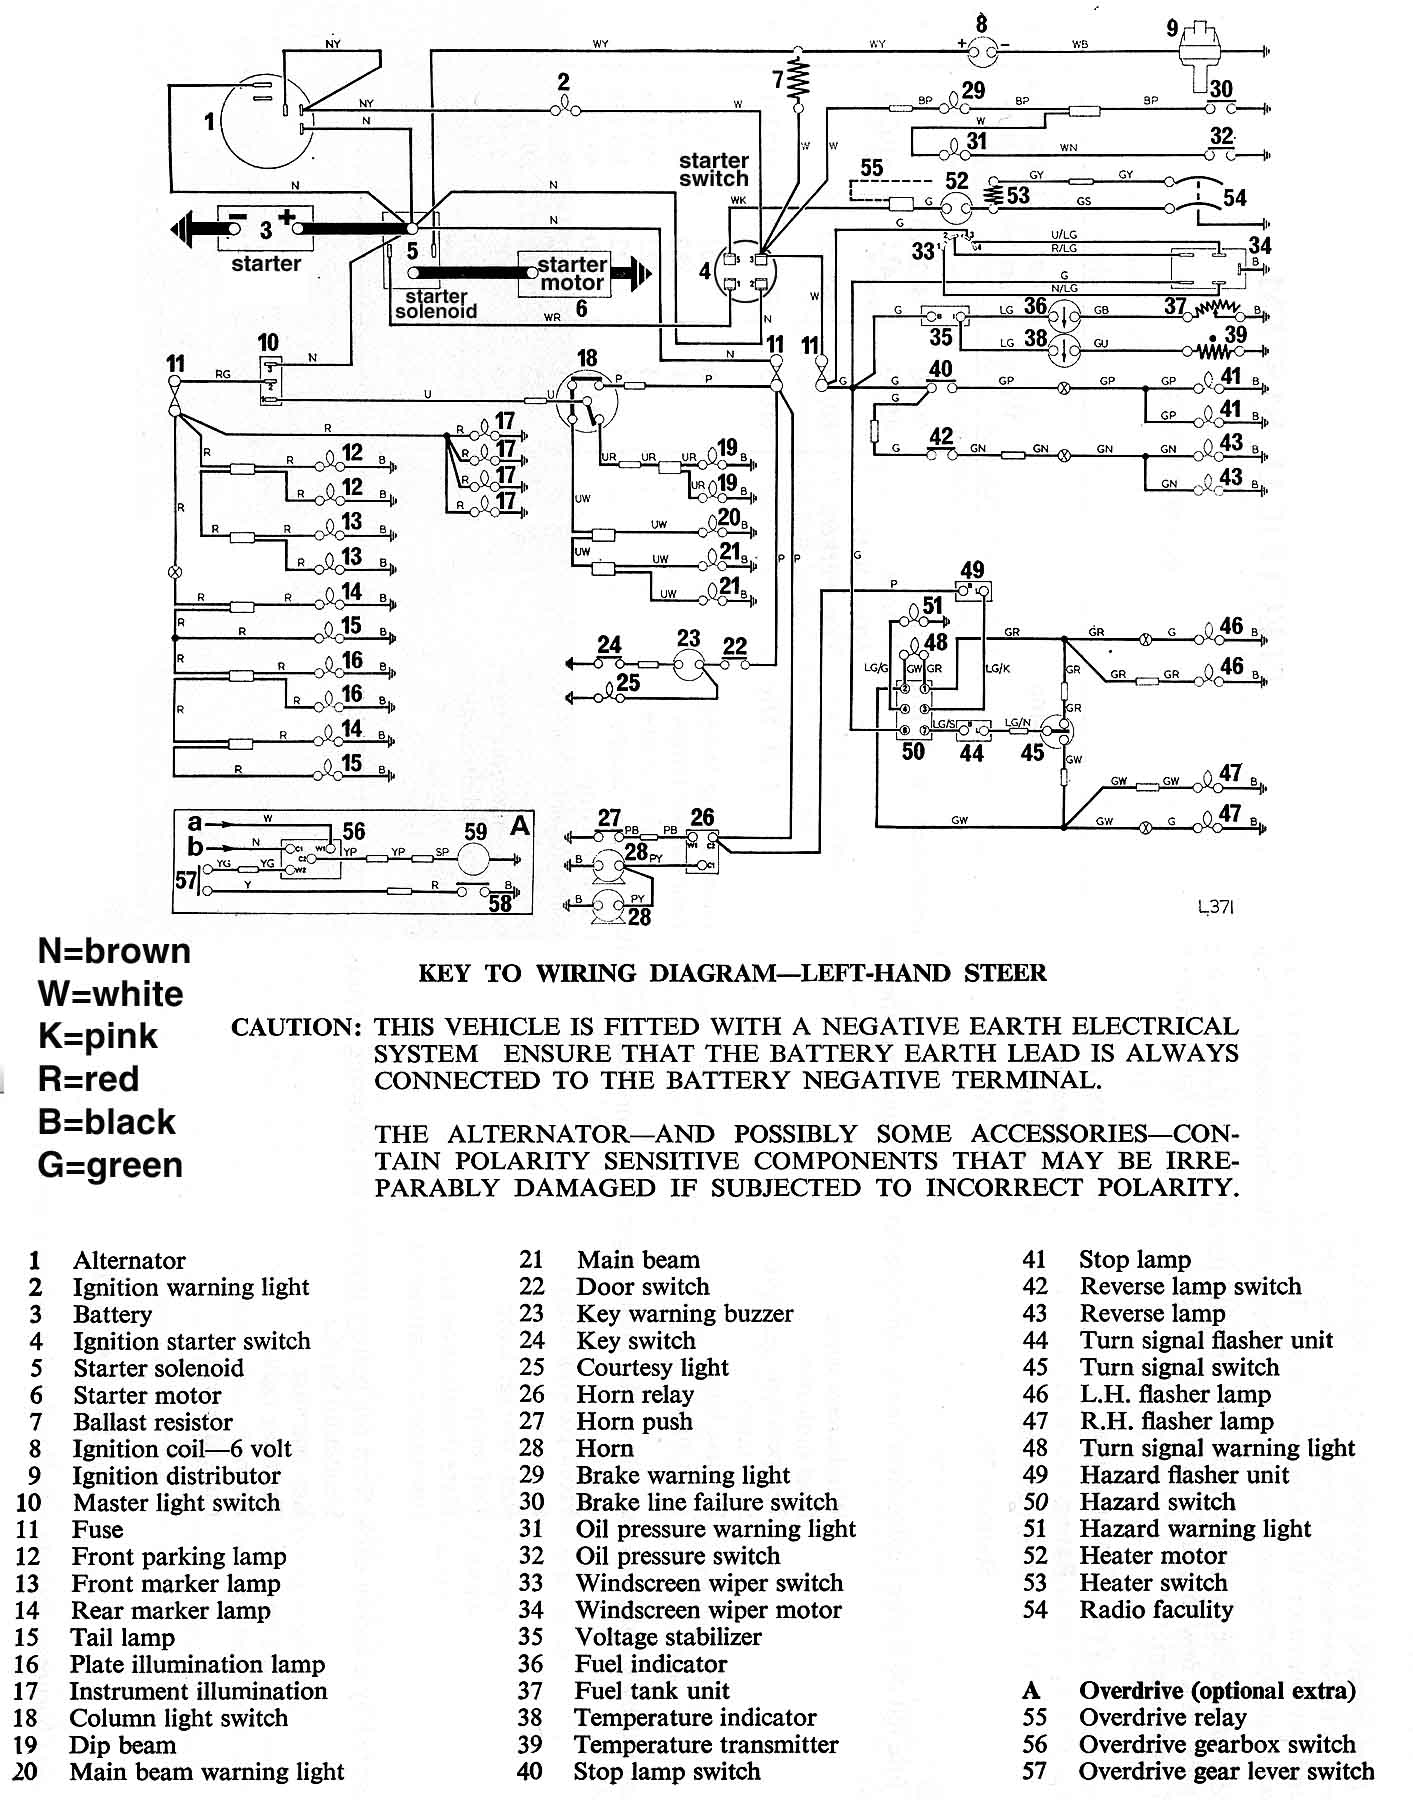 Ballast Resistor Wiring Triumph Get Free Image About Wiring Diagram on 1976 351 pcm wire diagram, fuel sending unit wiring diagram, instant start ballast wiring diagram, distributor wiring diagram, t8 ballast wiring diagram, 4 lamp ballast wiring diagram, chevy hei distributor wiring, coil resistor wiring diagram, advance ballast wiring diagram, fluorescent light wiring diagram, mastercraft indmar engine diagram, electronic ballast wiring diagram, mastercraft boat wiring diagram, neutral grounding resistor wiring diagram, 68 mustang ignition diagram, basic 12 ballast wiring diagram,